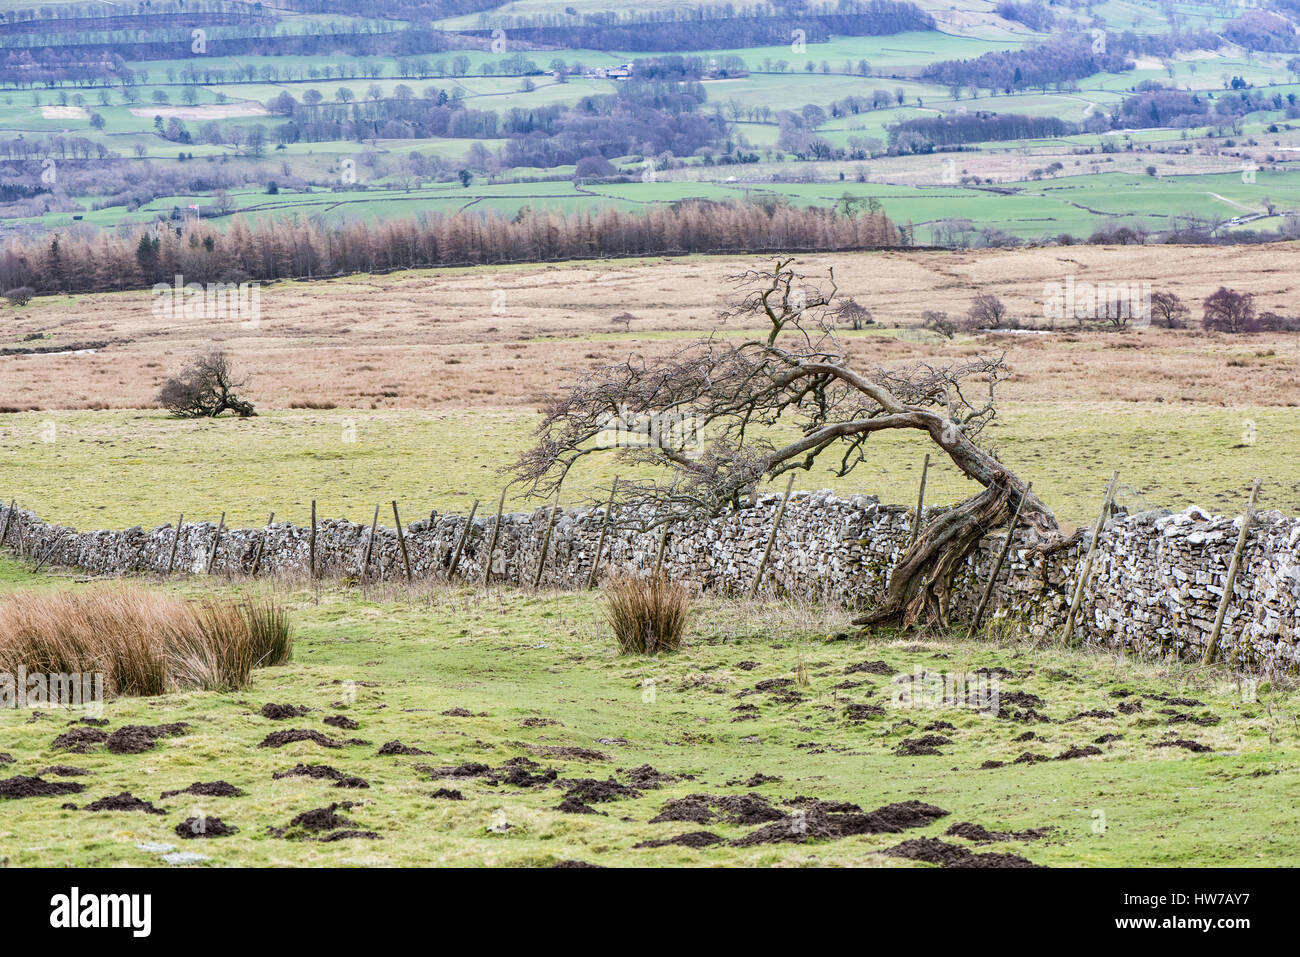 Windblown hawthorns and a drystone wall separating Anderson Park from Blackhill Park, Castle Bolton, Wensleydale Stock Photo